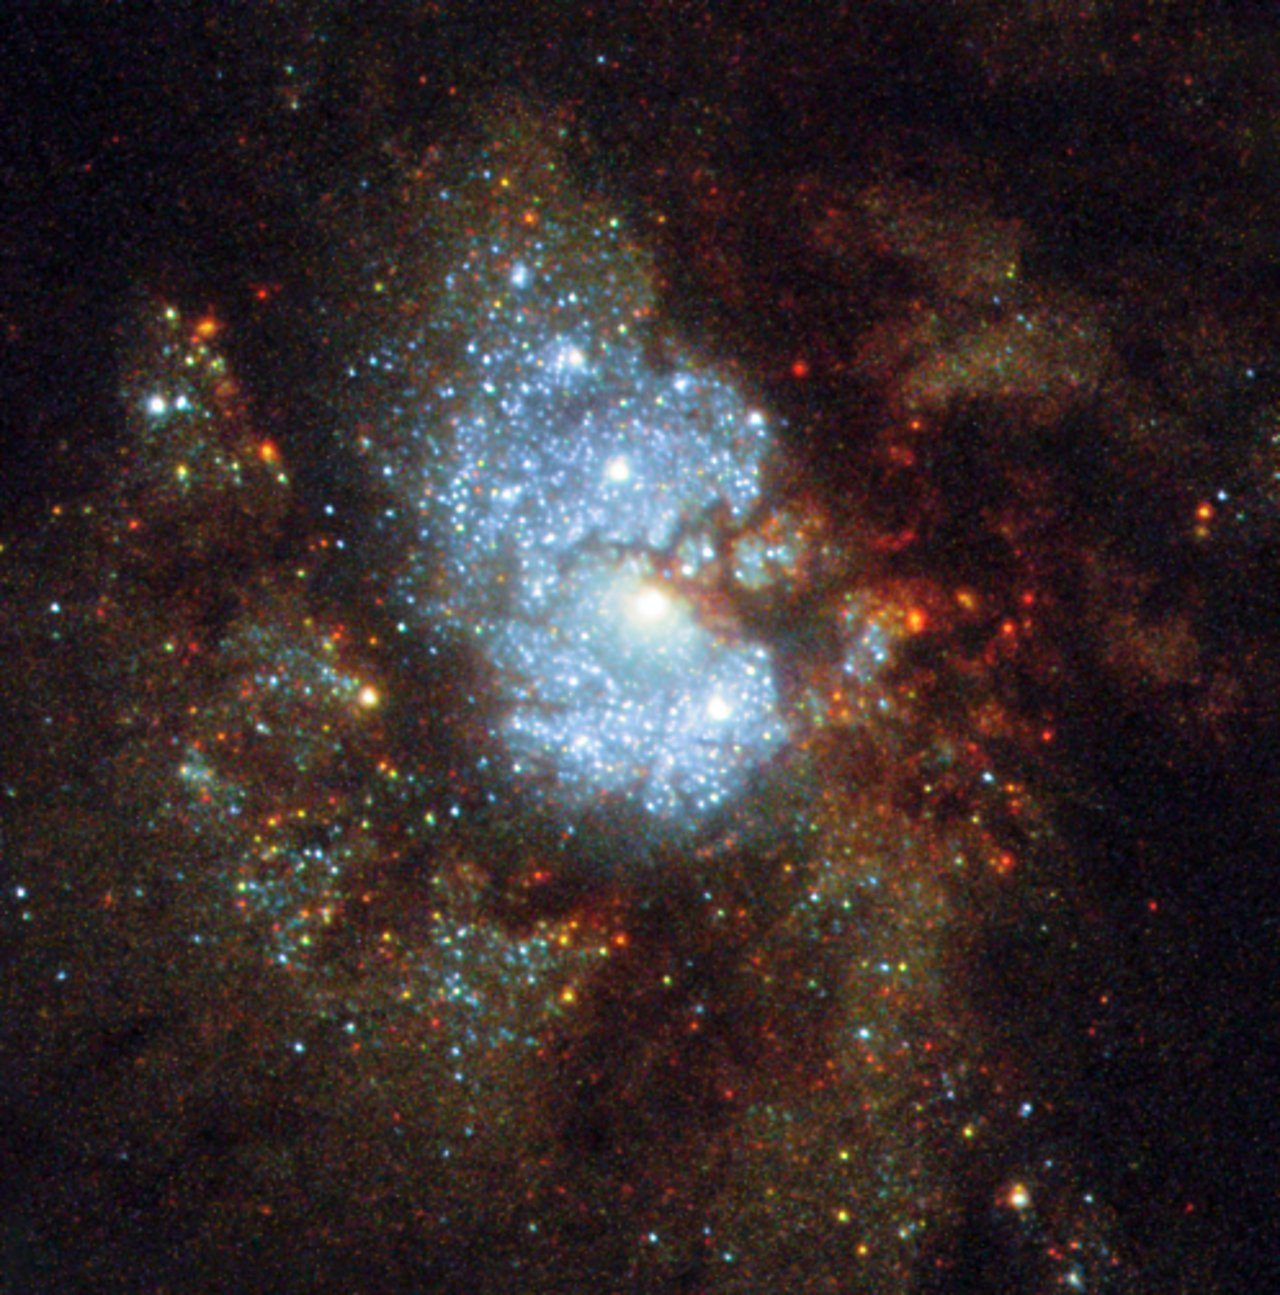 NASA's Hubble Captures Images of a Hidden Galaxy named IC 342